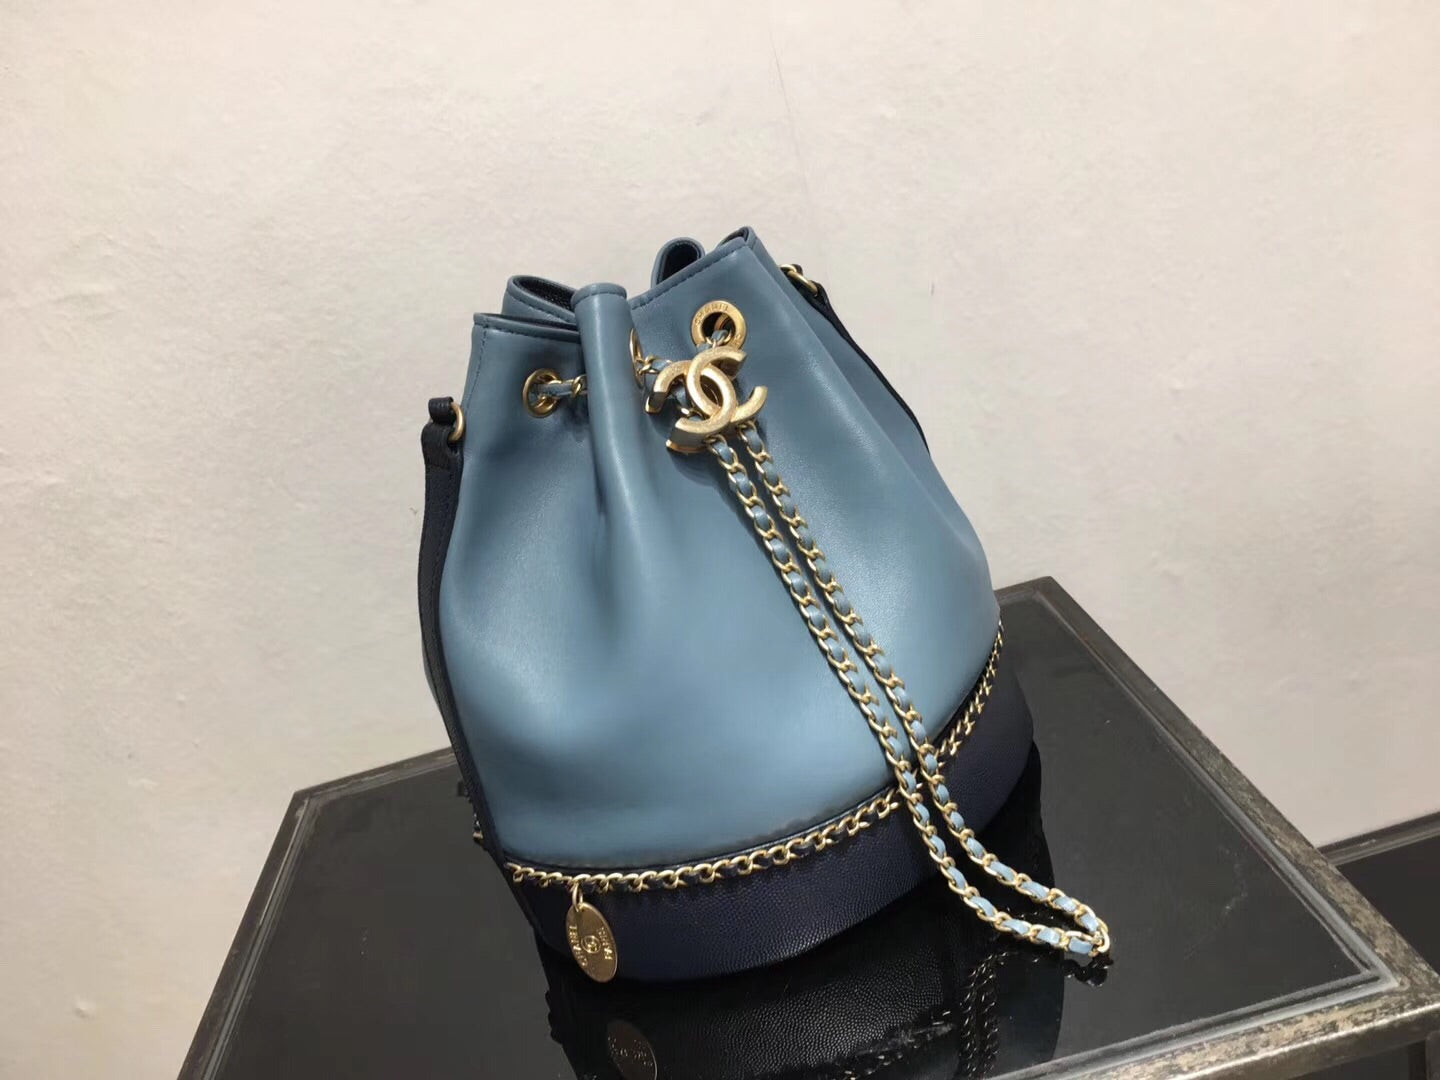 CHANEL BUCKET BAG - vlixcogoods